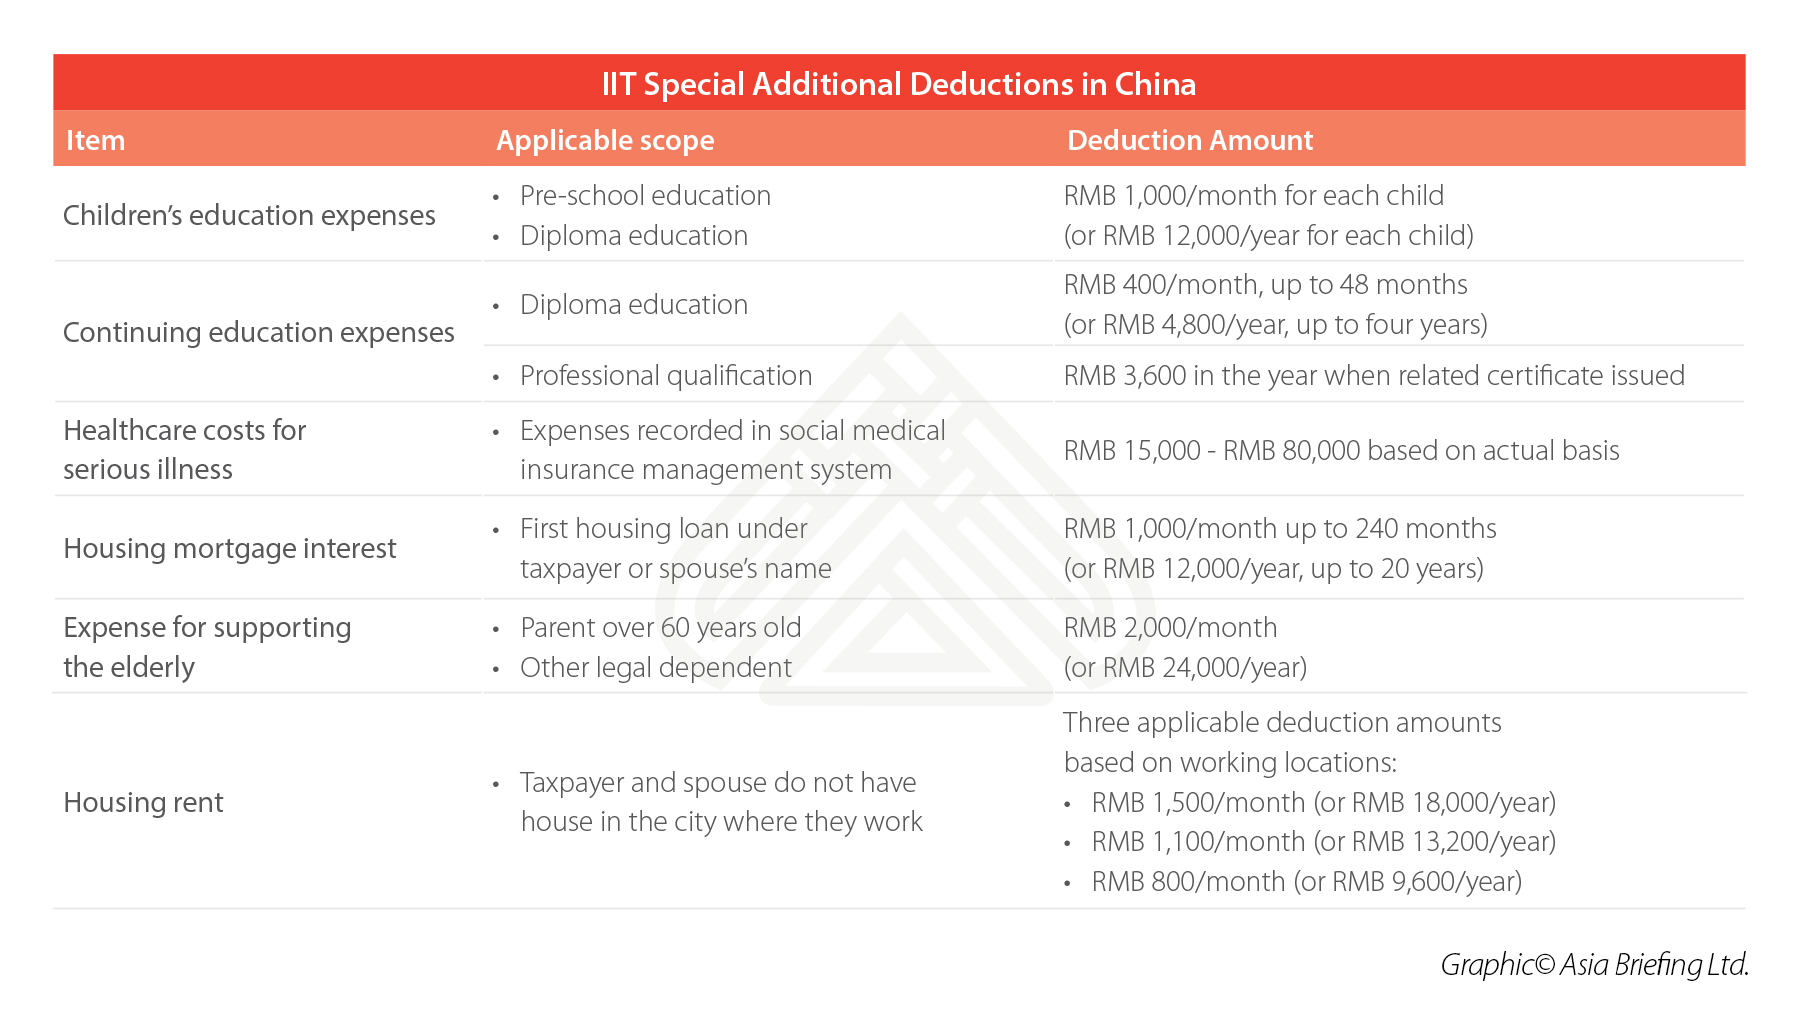 china-IIT-special-additional-deductions